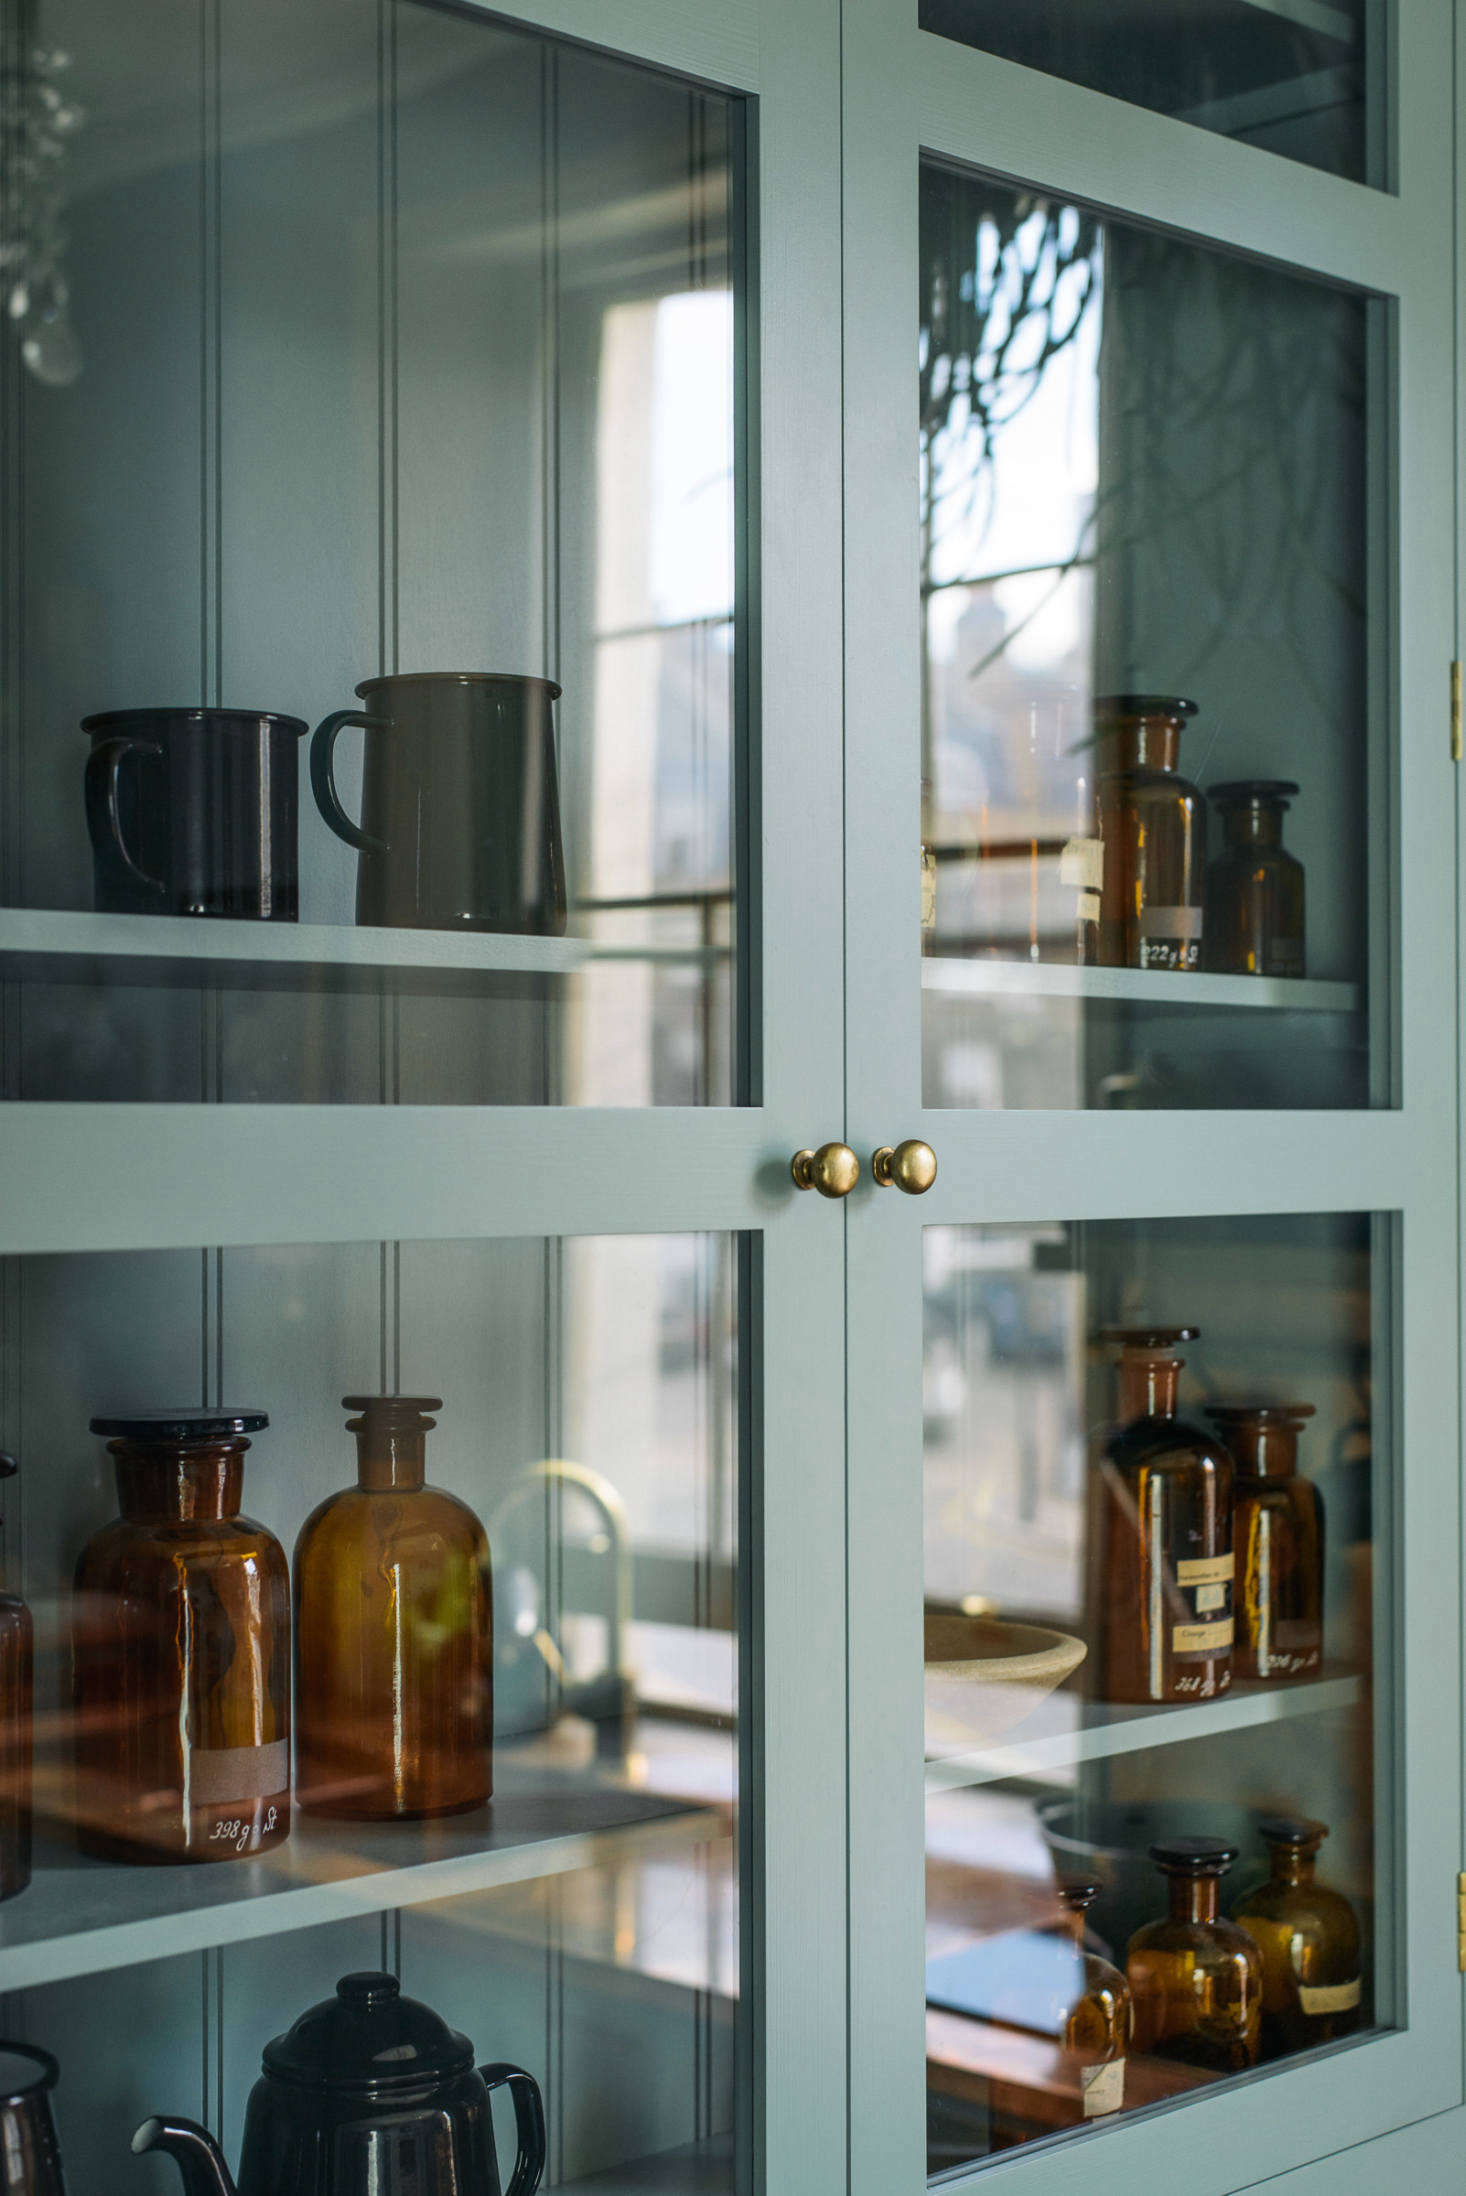 Kitchen of the Week: deVol\'s Urban Rustic Kitchen Gets a Glamorous ...